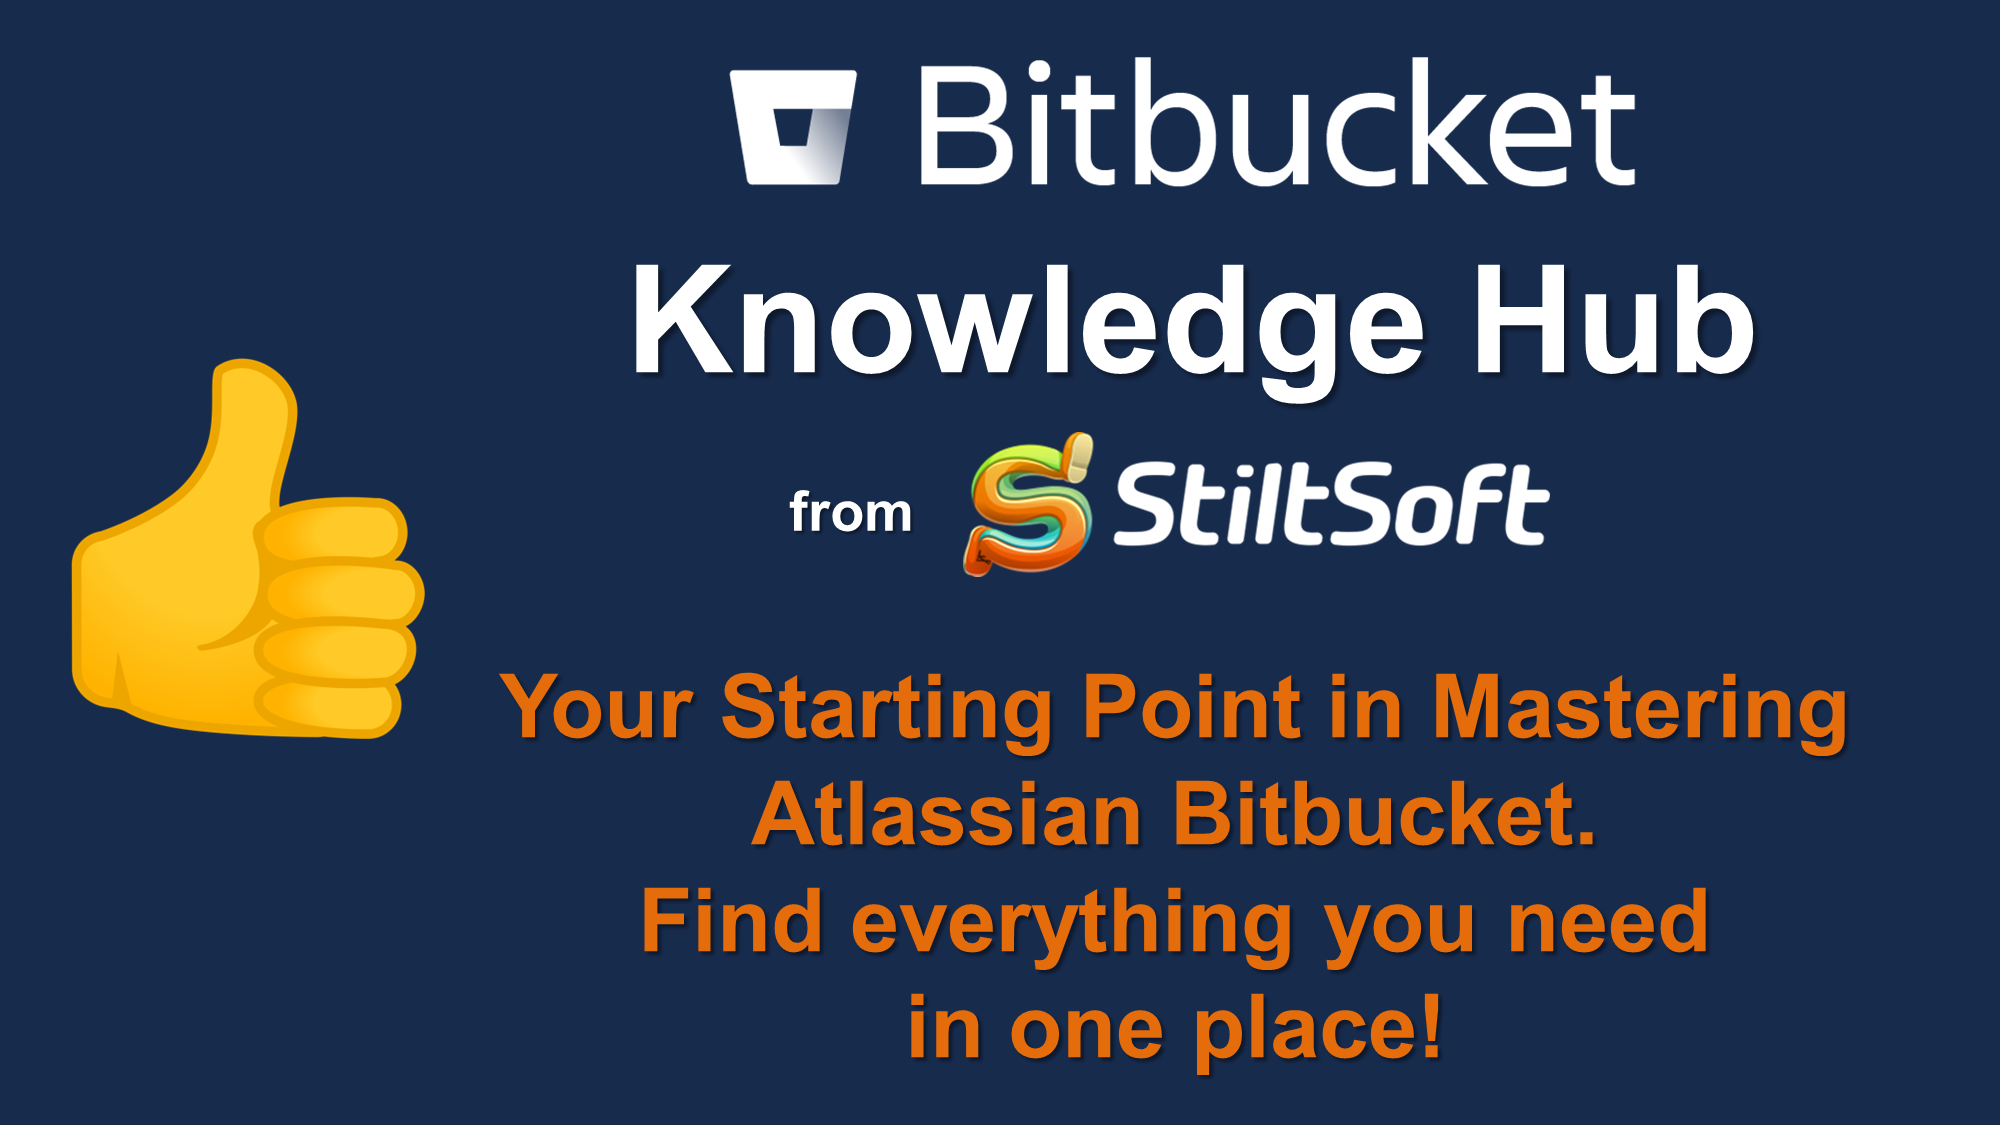 Knowledge Hub for Bitbucket